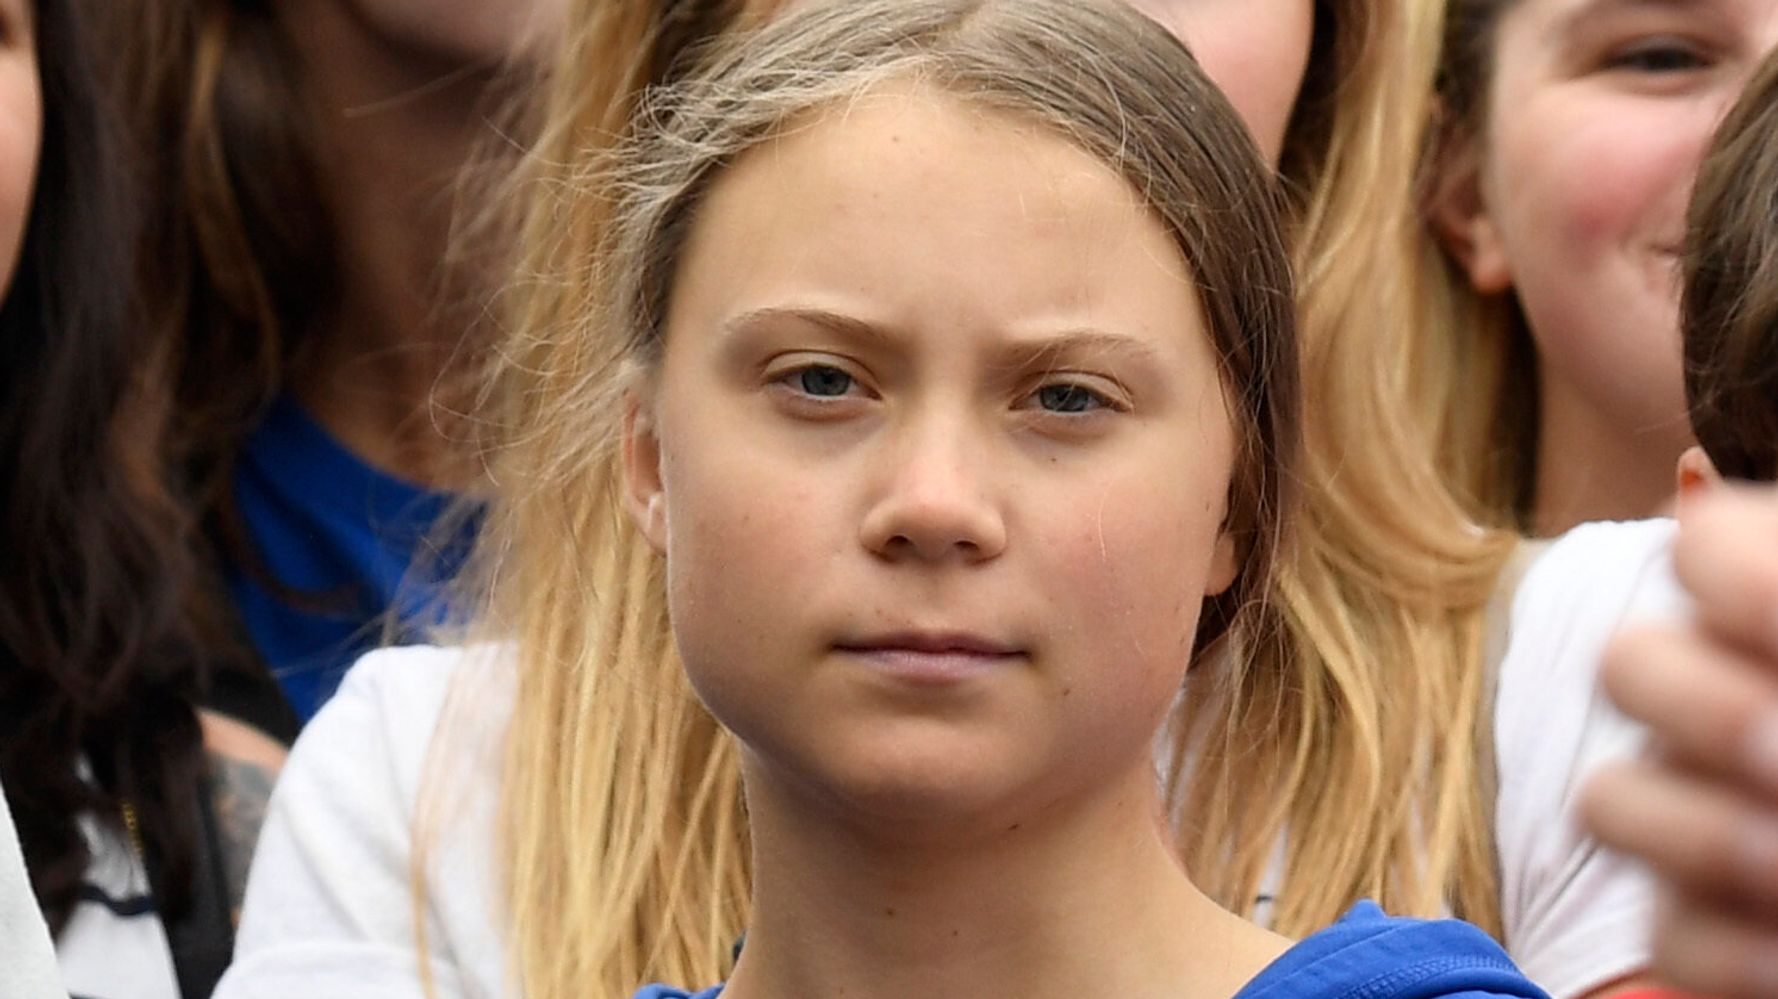 'Incredibly Moving' Photo Of Greta Thunberg's First-Ever Climate Strike Goes Viral